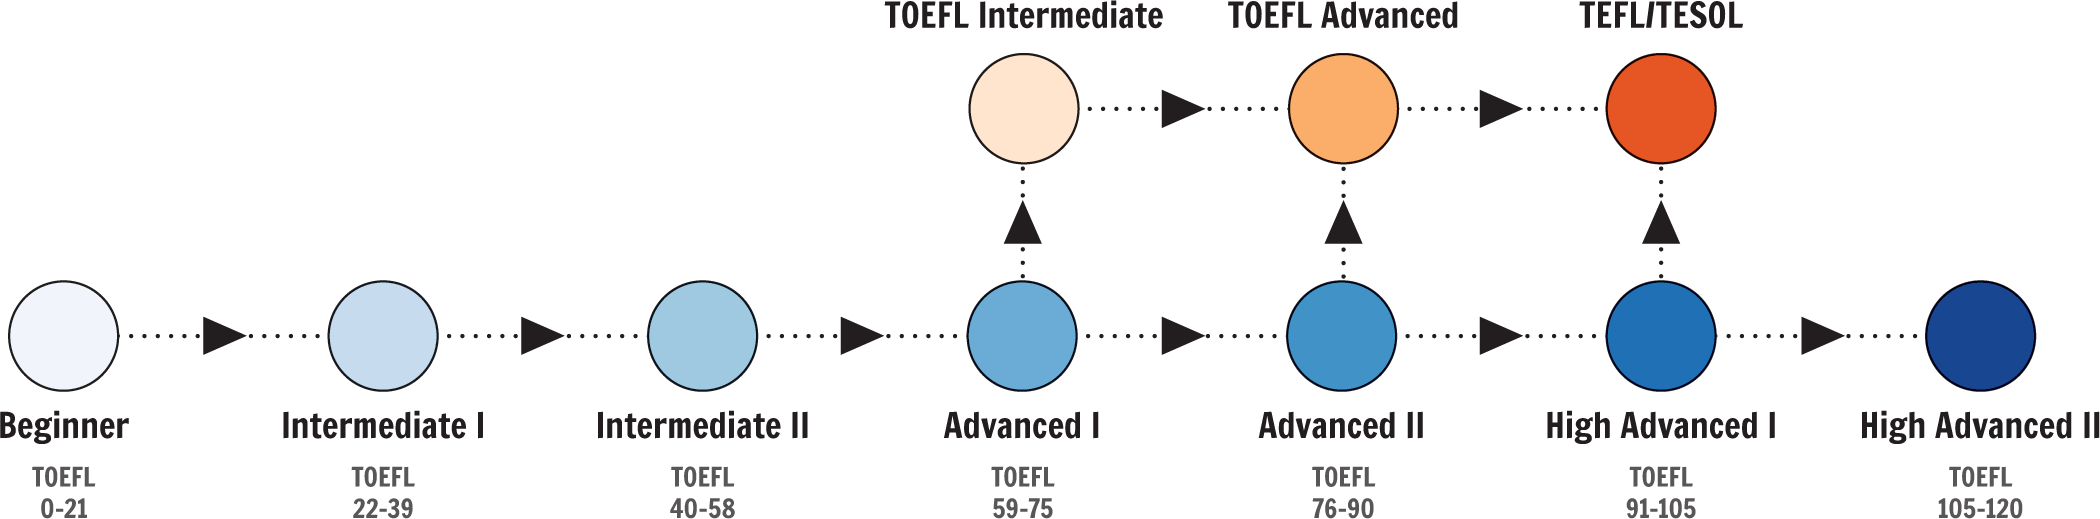 Boston International Academy Level Progression - ESL, TOEFL, and TEFL/TESOL